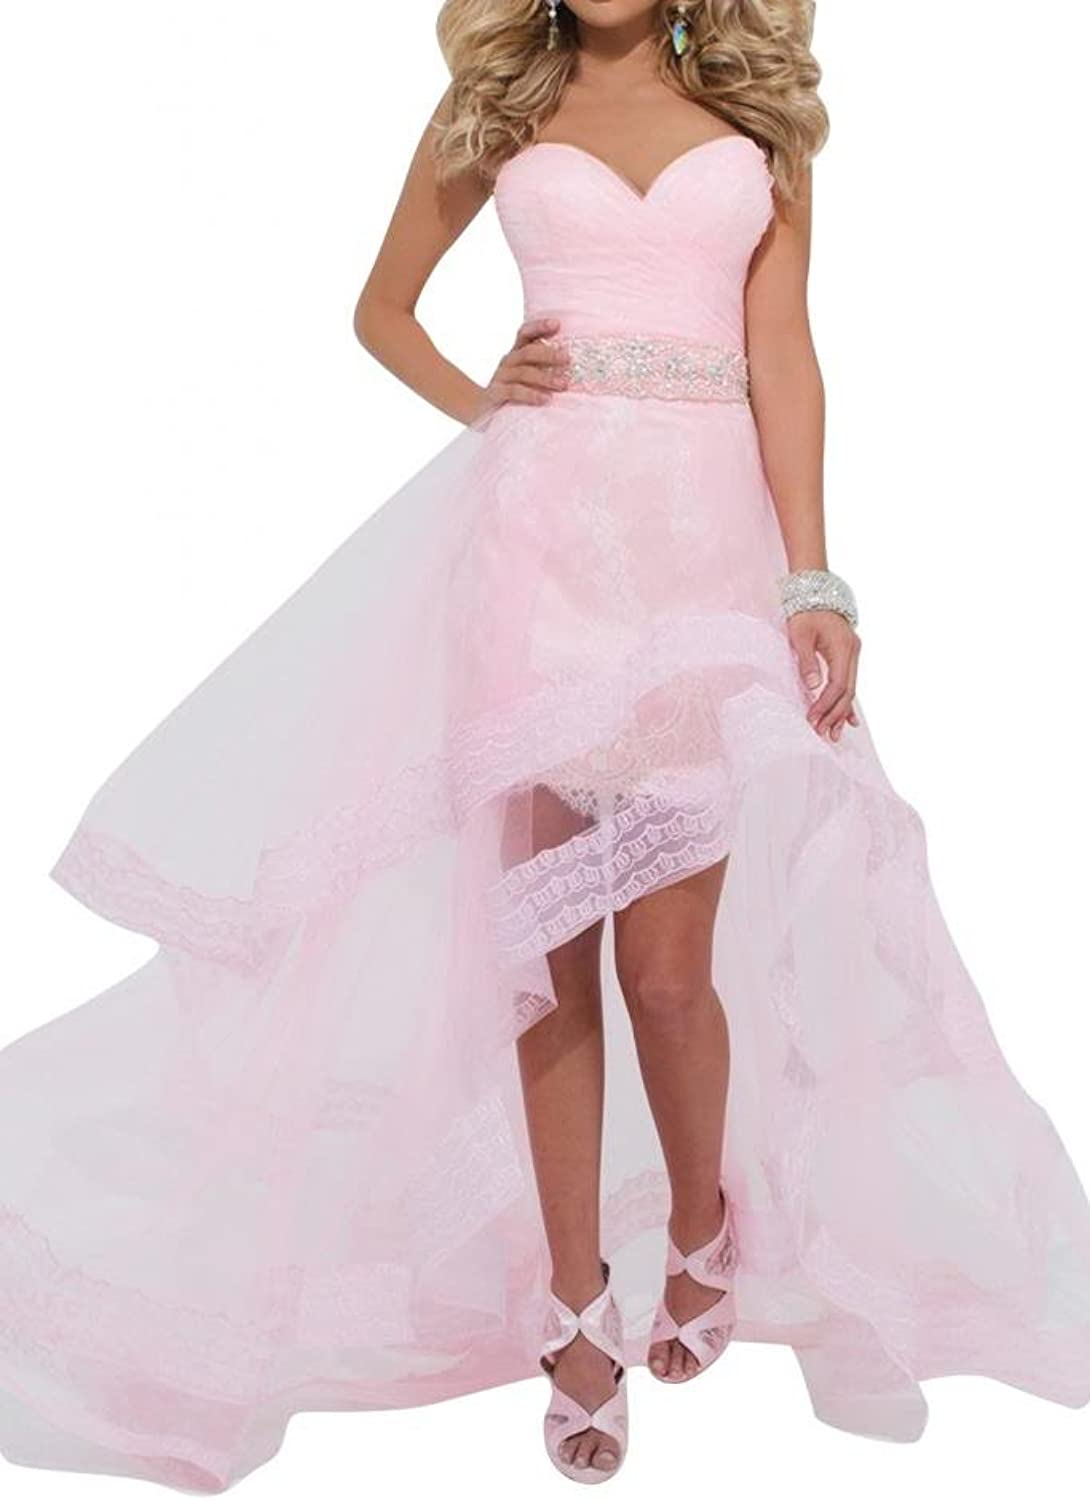 Angel Bride HiLo Homecoming Evening Dresses Tulle Party Cocktail Dresses